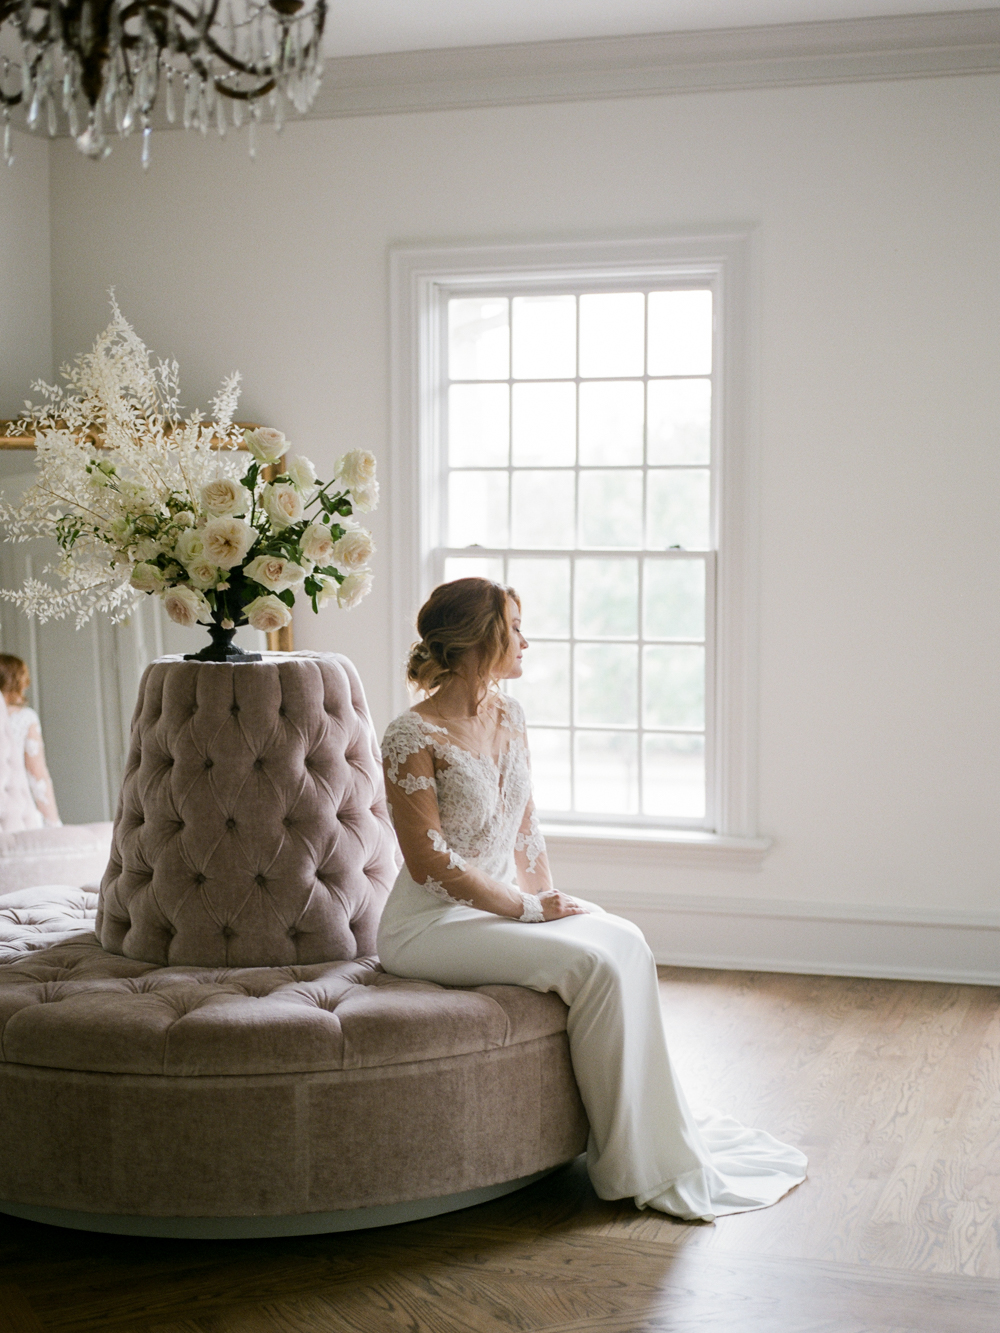 Christine Gosch - destination film photographer - houston wedding photographer - fine art film photographer - elopement photographer - destination wedding - understated wedding - simple beautiful wedding photography-117.jpg